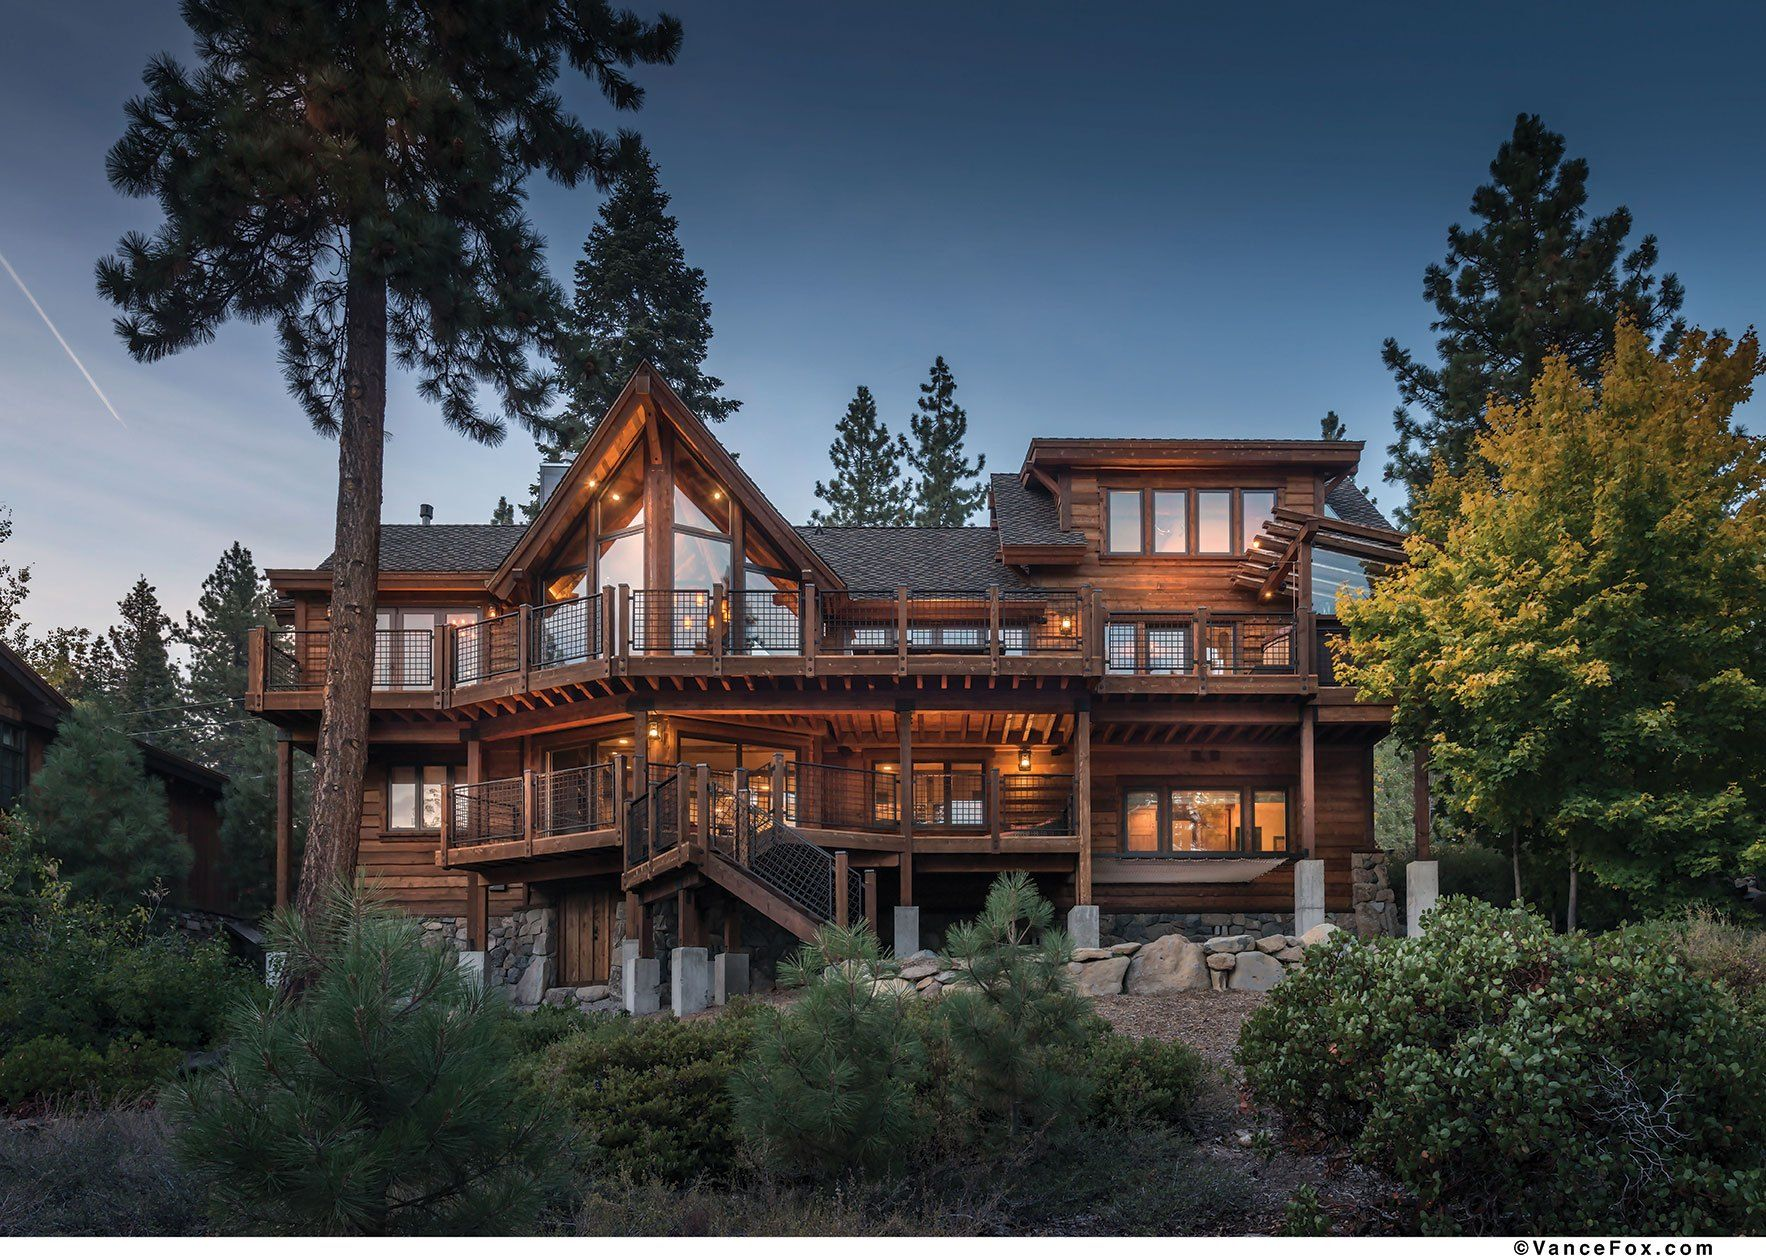 stay retreats country charm cabin to dancing northshore across located memorable this natural street north dancingantler that from tahoe rentals sure offers home accommodation lake brockway a the in is antler your cabins shore one make vacation